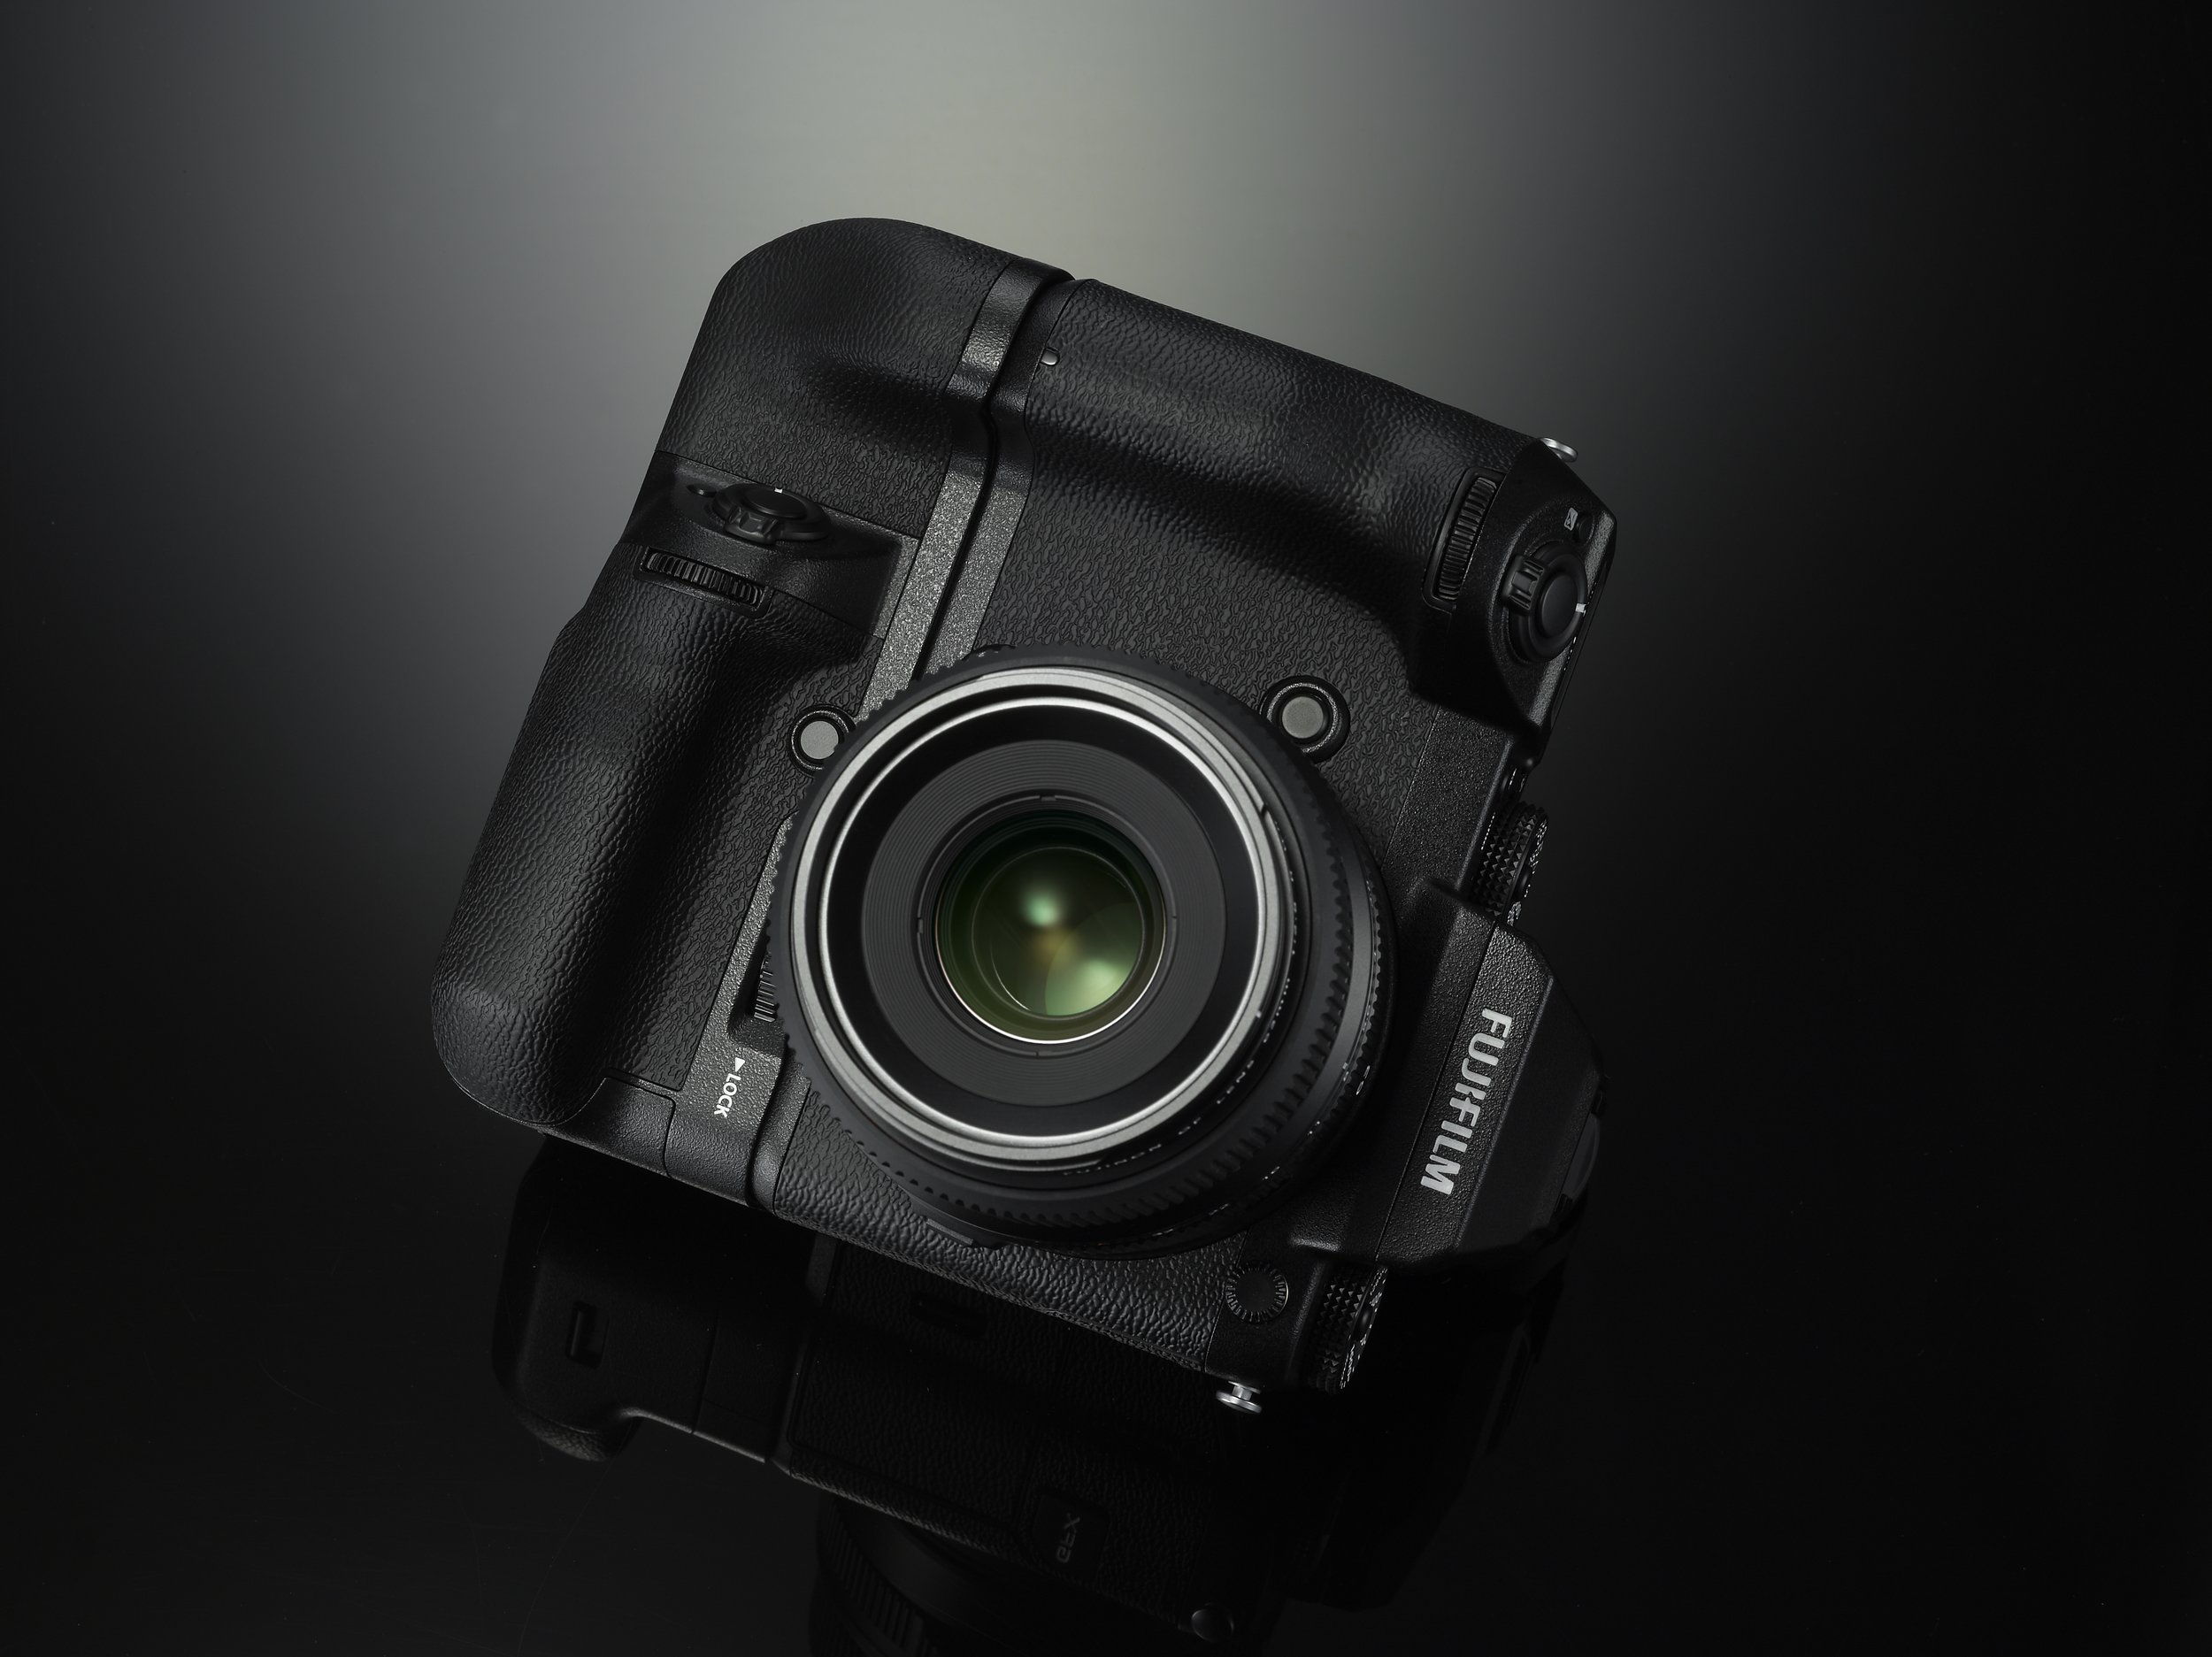 The optional grip turns the GFX into a squarish block. This improves the ergonomics when holding the camera vertically.